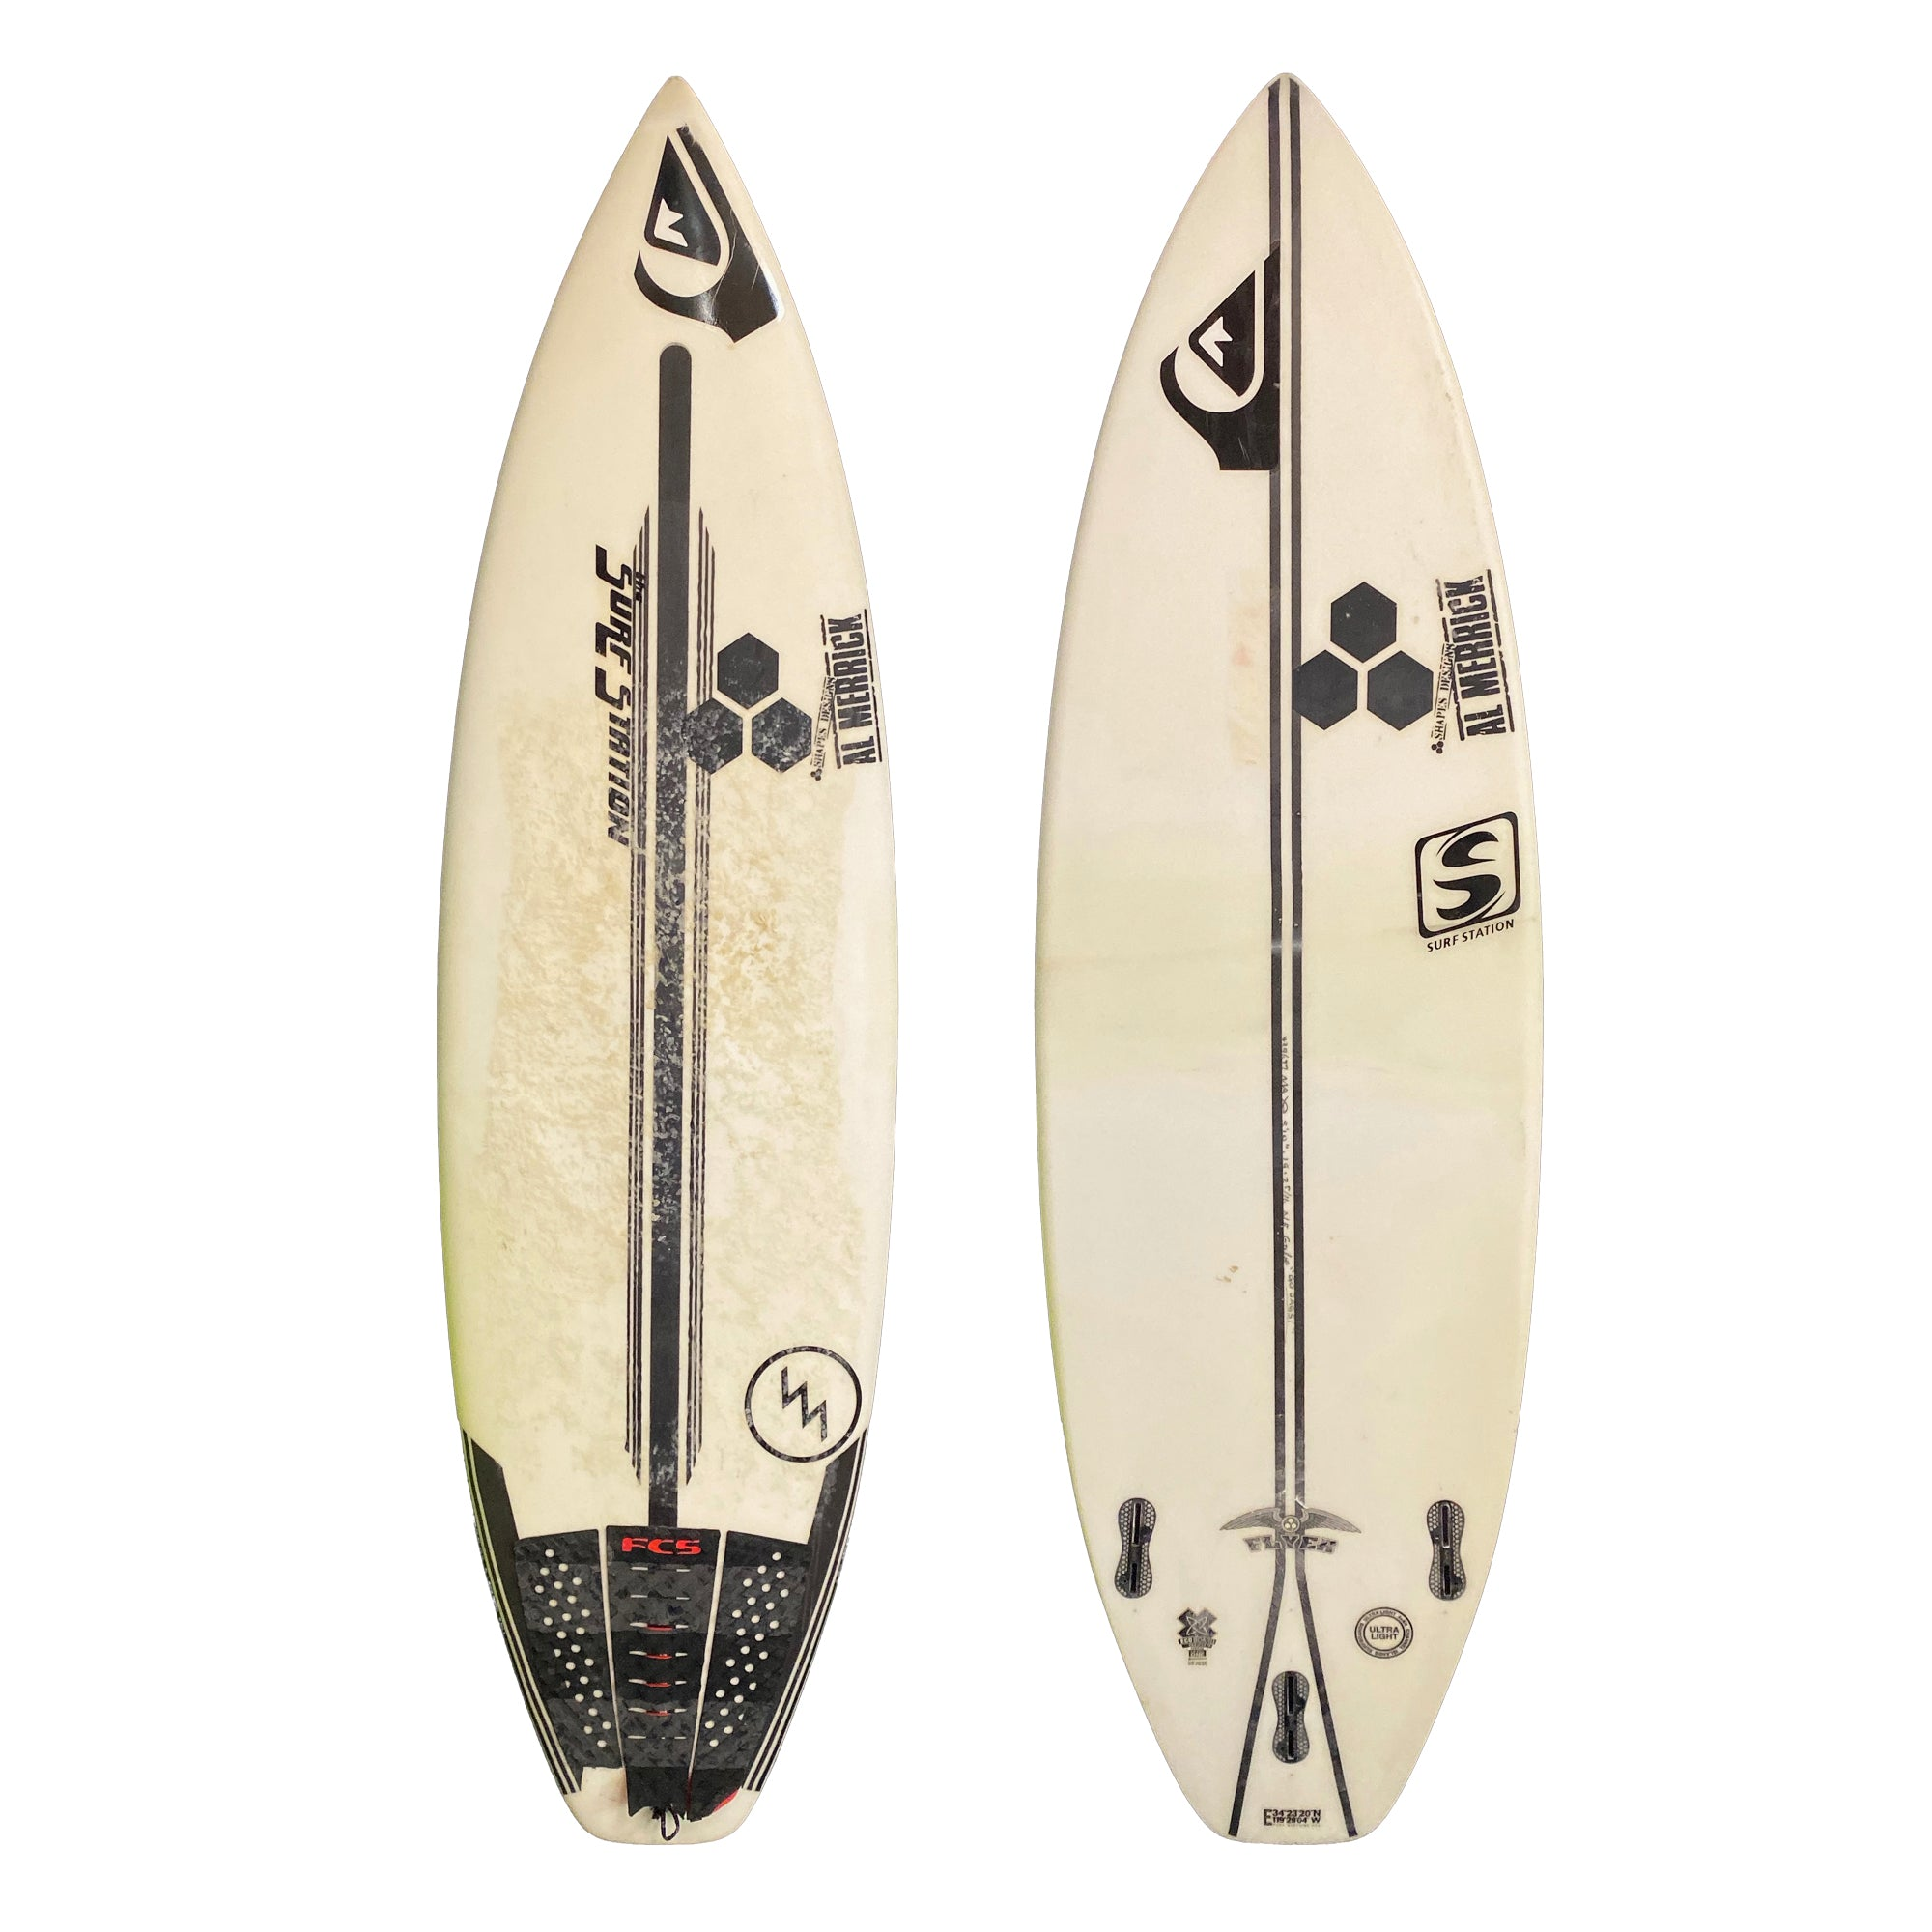 Channel Islands OG Flyer 5'10 Used Surfboard